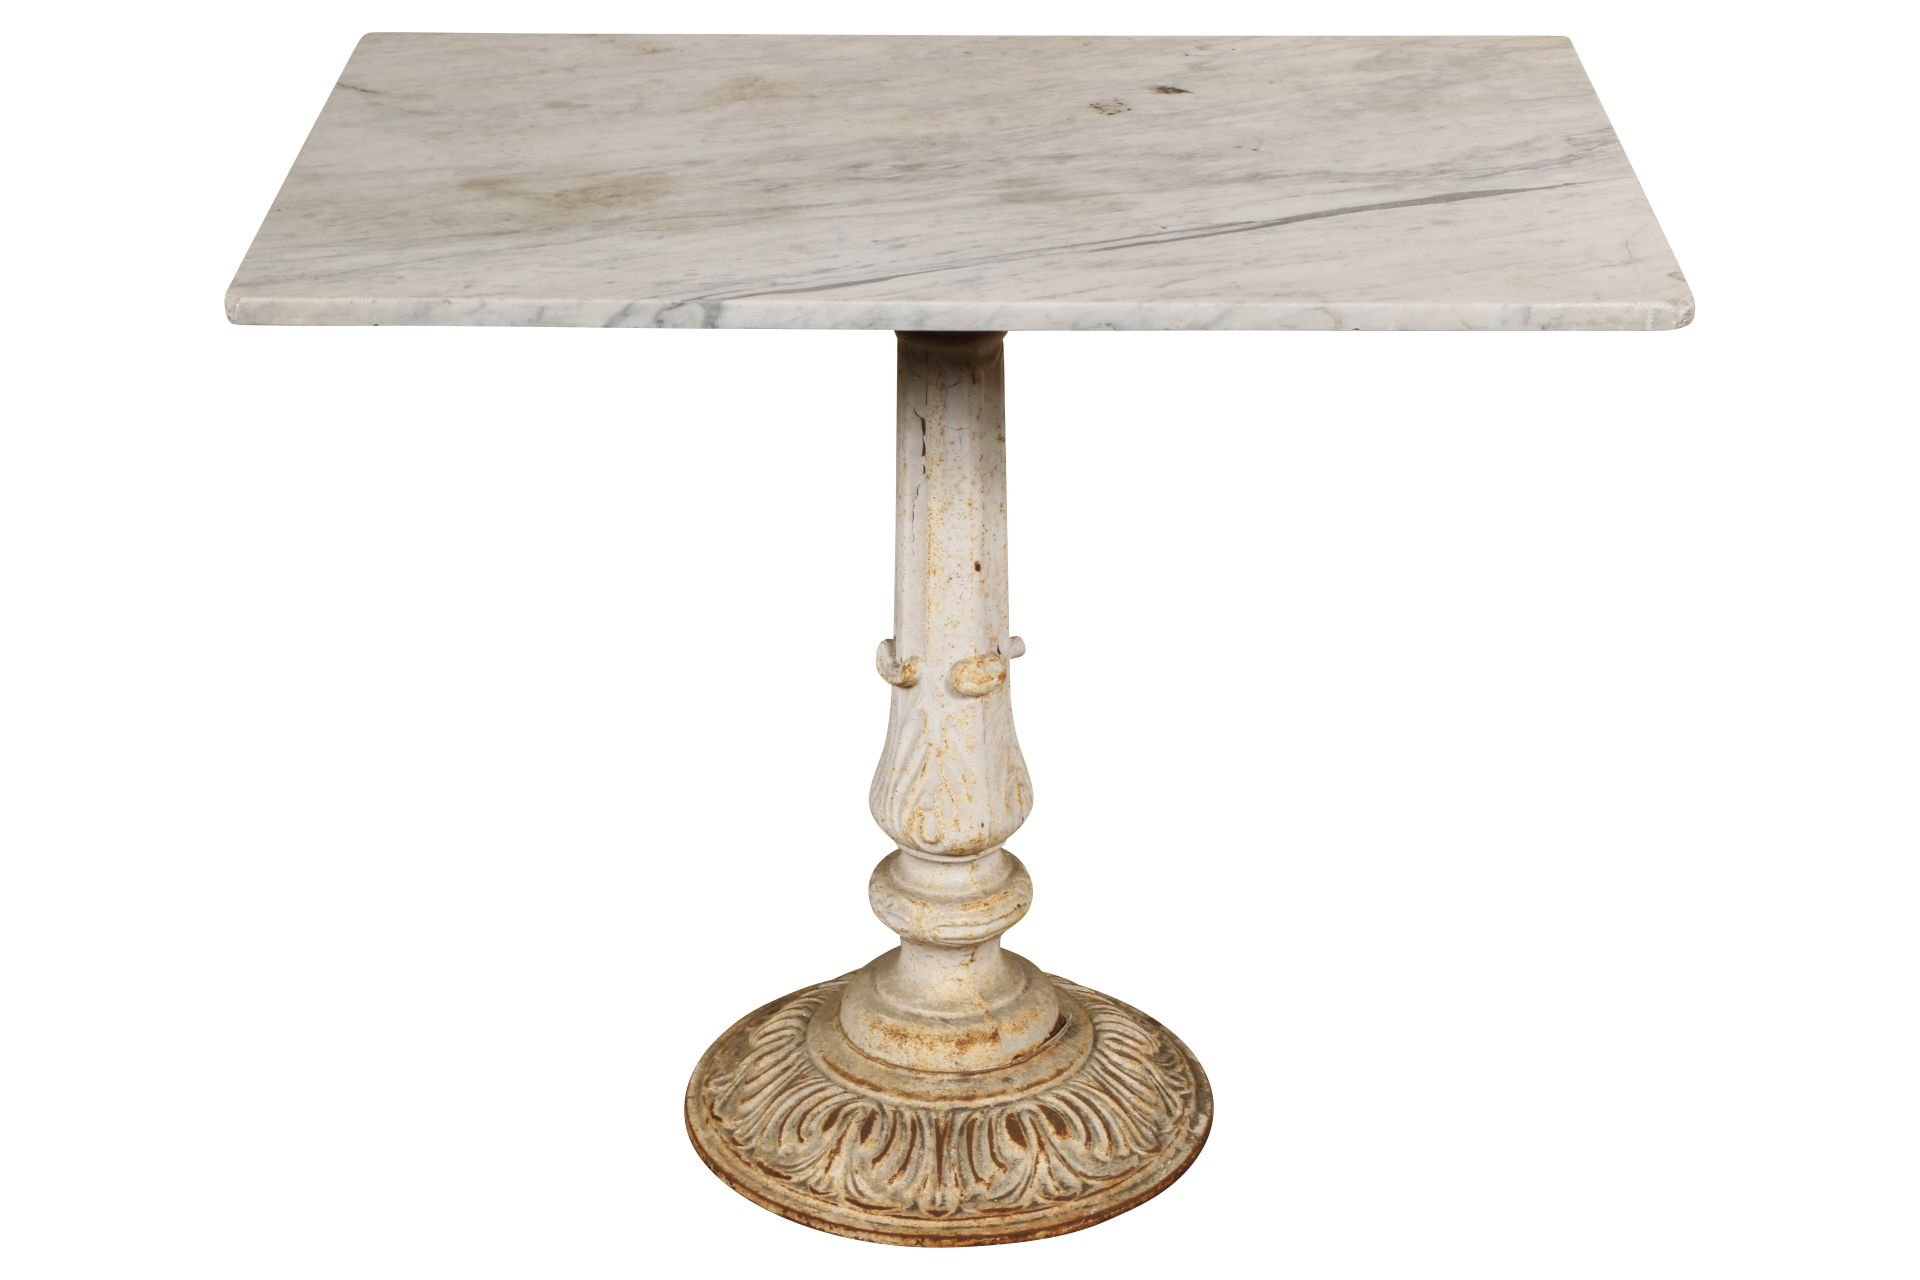 A rectangular gray marble top mounted on an antique cast iron fluted